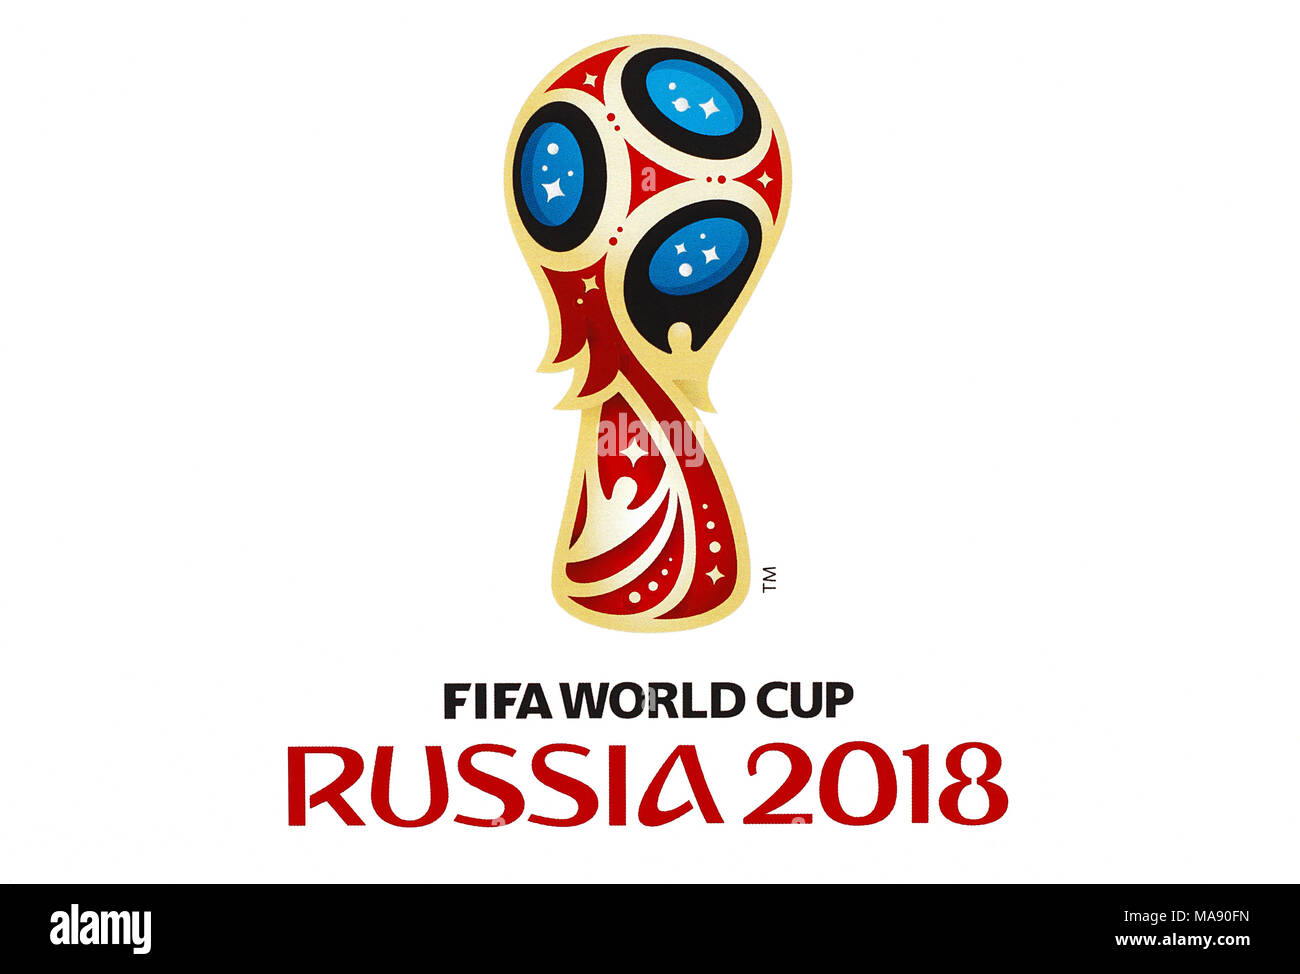 GDANSK, POLAND - MARCH 20, 2018. Football world championship in Russia, logo printed in World Cup 2018 sticker album. Editorial use only! - Stock Image